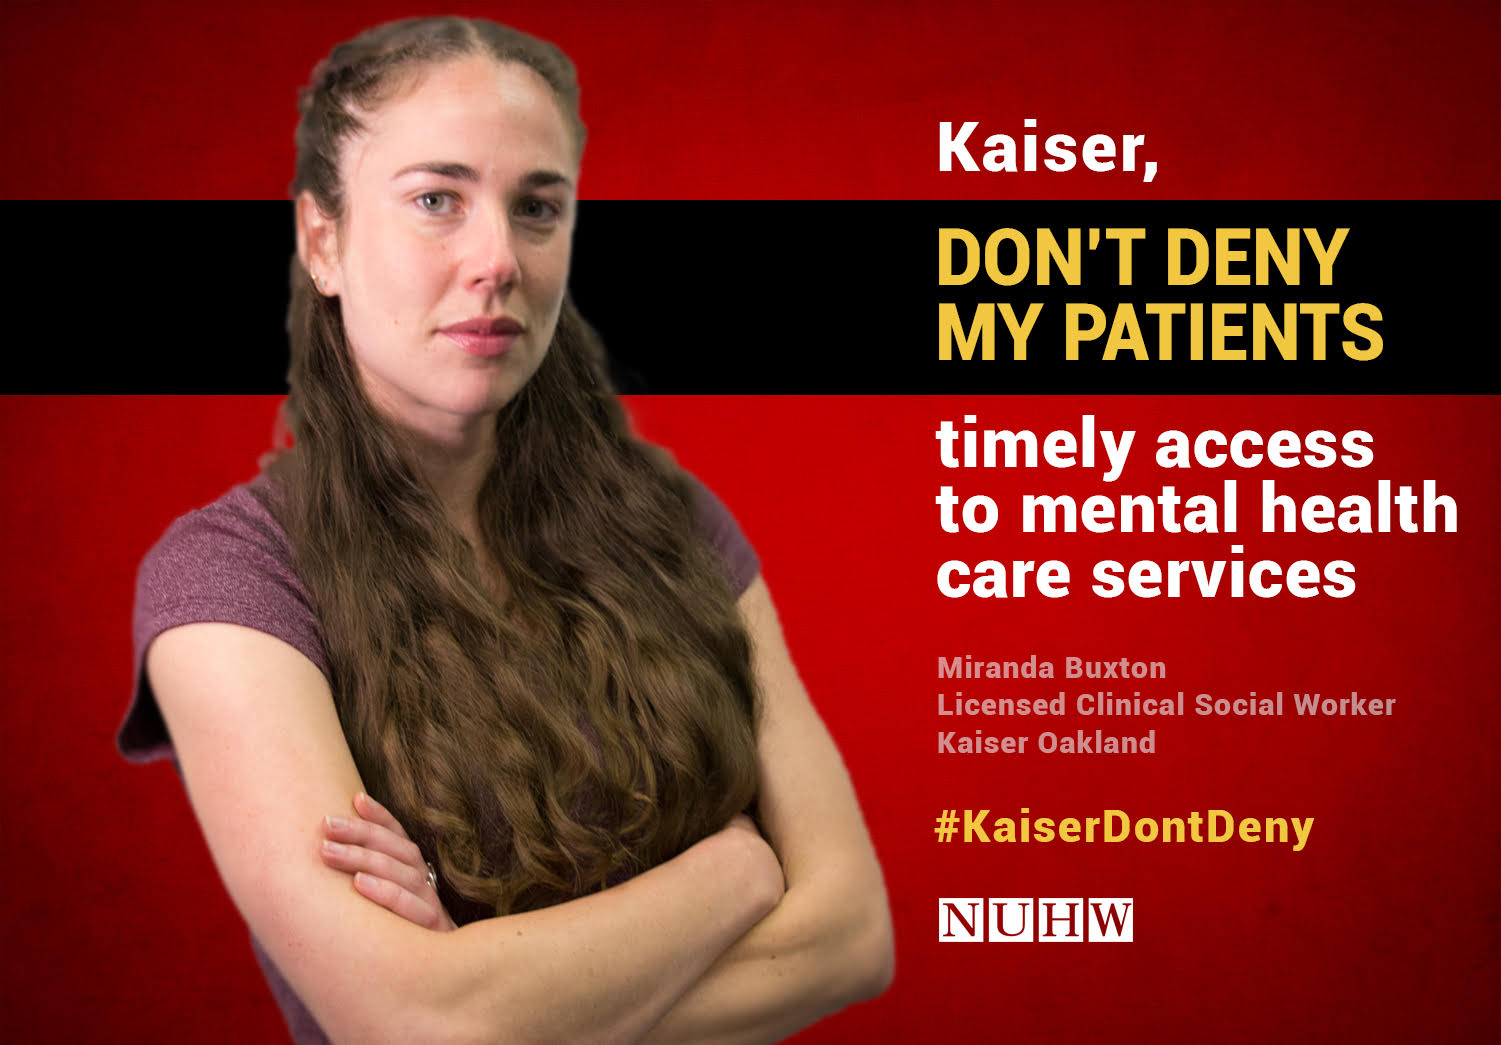 Kaiser, don't deny my patients timely access to mental health care services. -- Miranda Buxton, Licensed Clinical Social Worker, Kaiser Oakland